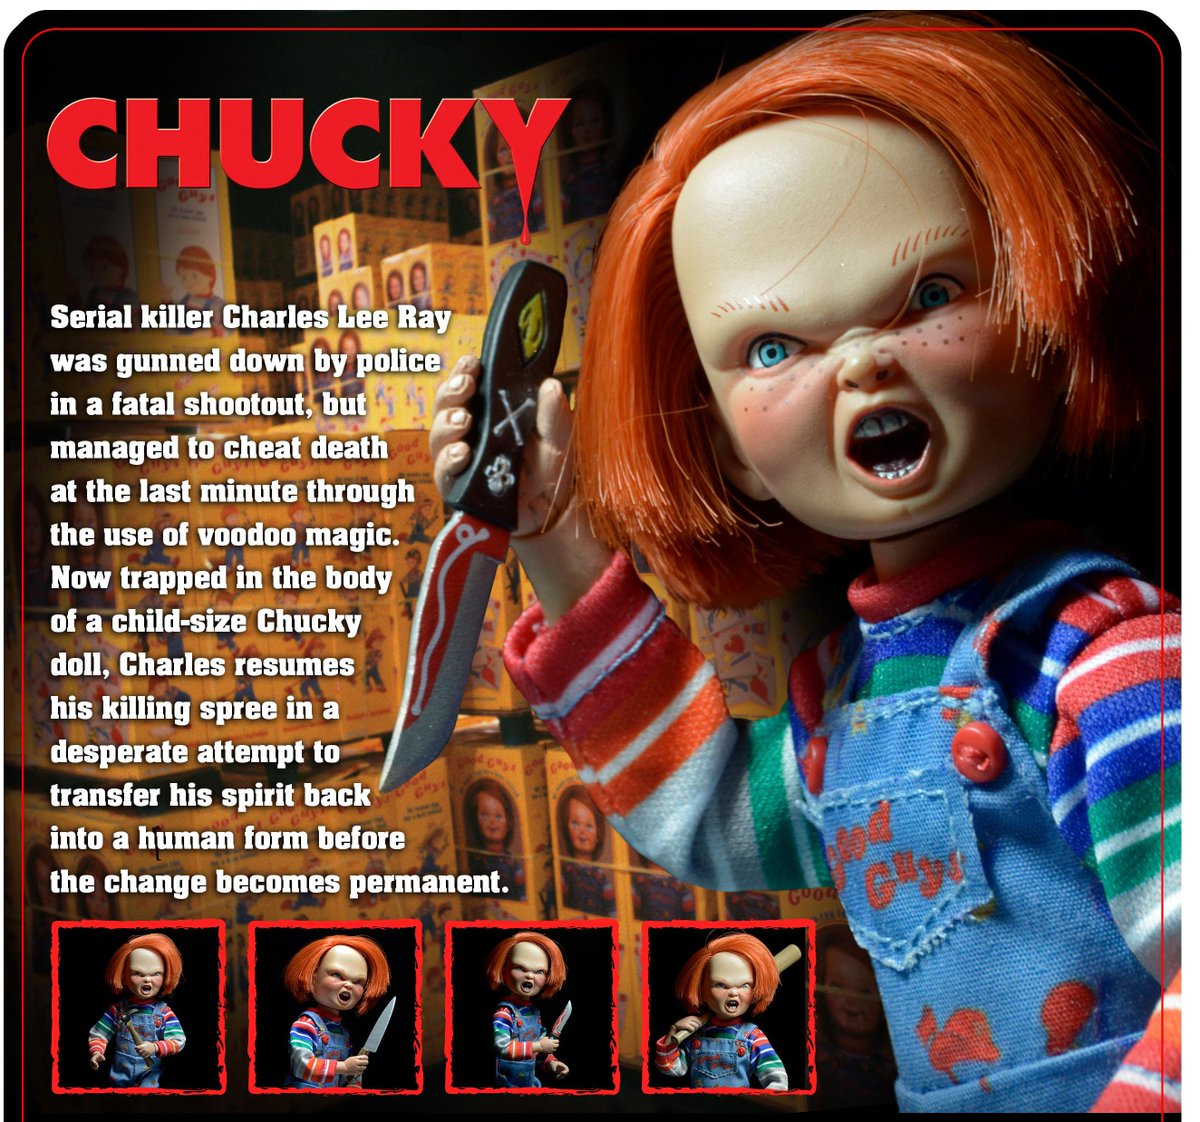 A Peek At The Packaging Back For Long Awaited Clothed CHUCKY Figure Coming Soon Monstermonday